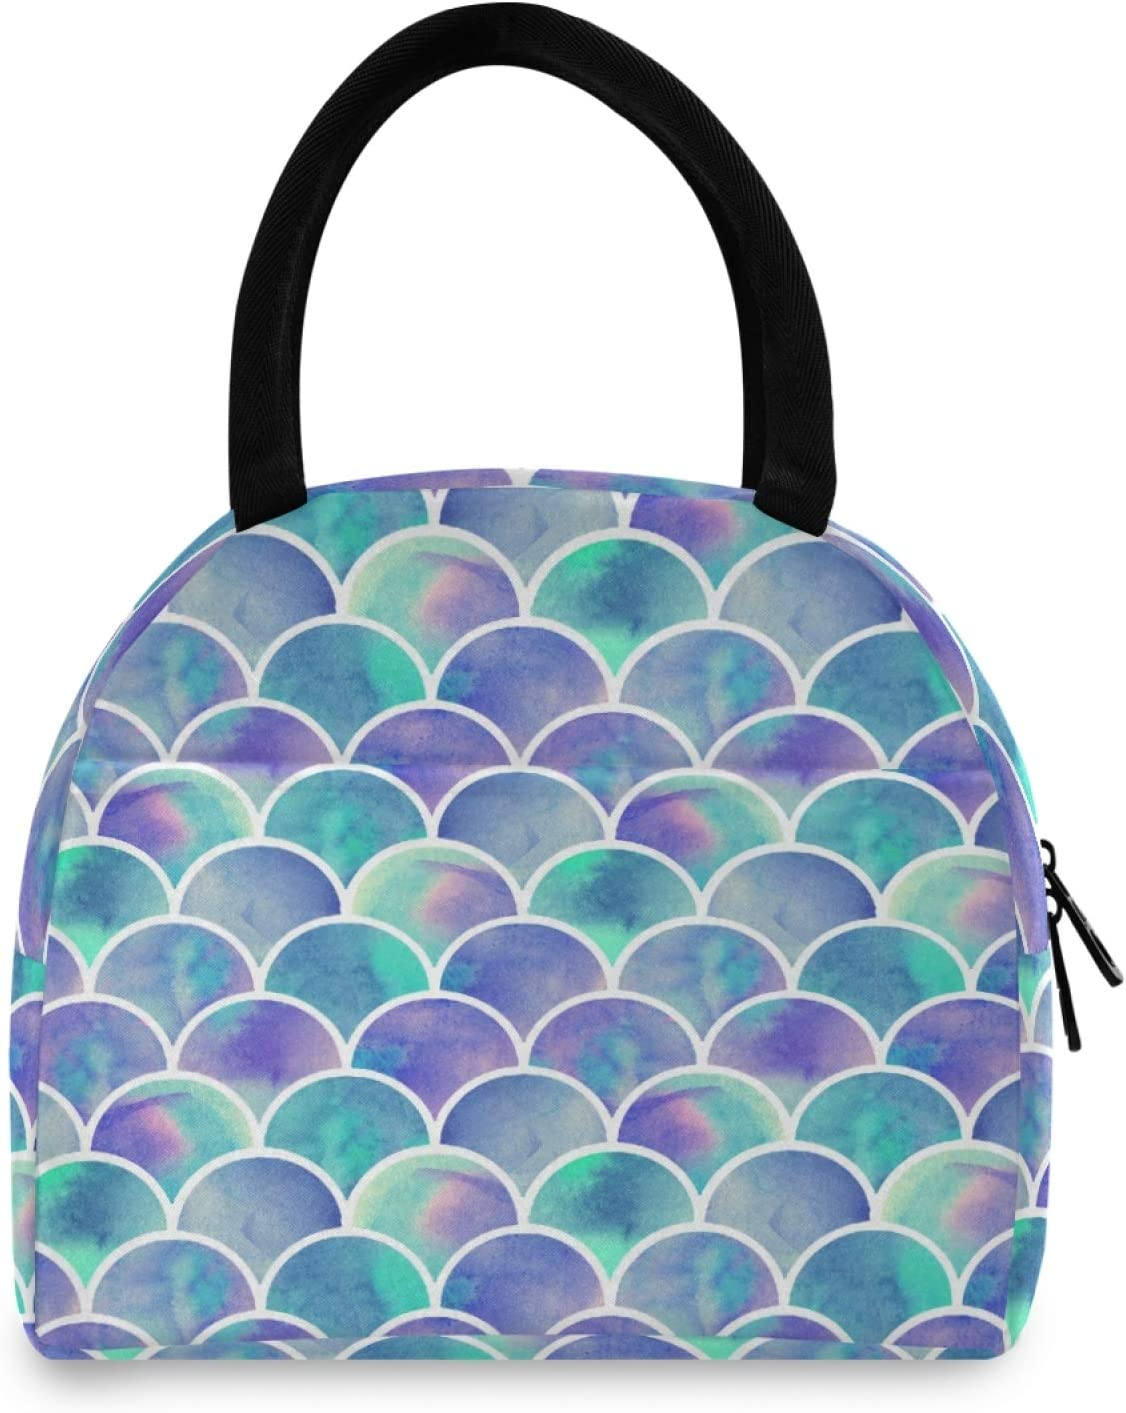 Bardic Lunch Bags Mermaid Rainbow Scales Lunch Box Insulated Tote Bag Cooler Bag Lunch Bag for Woman Men